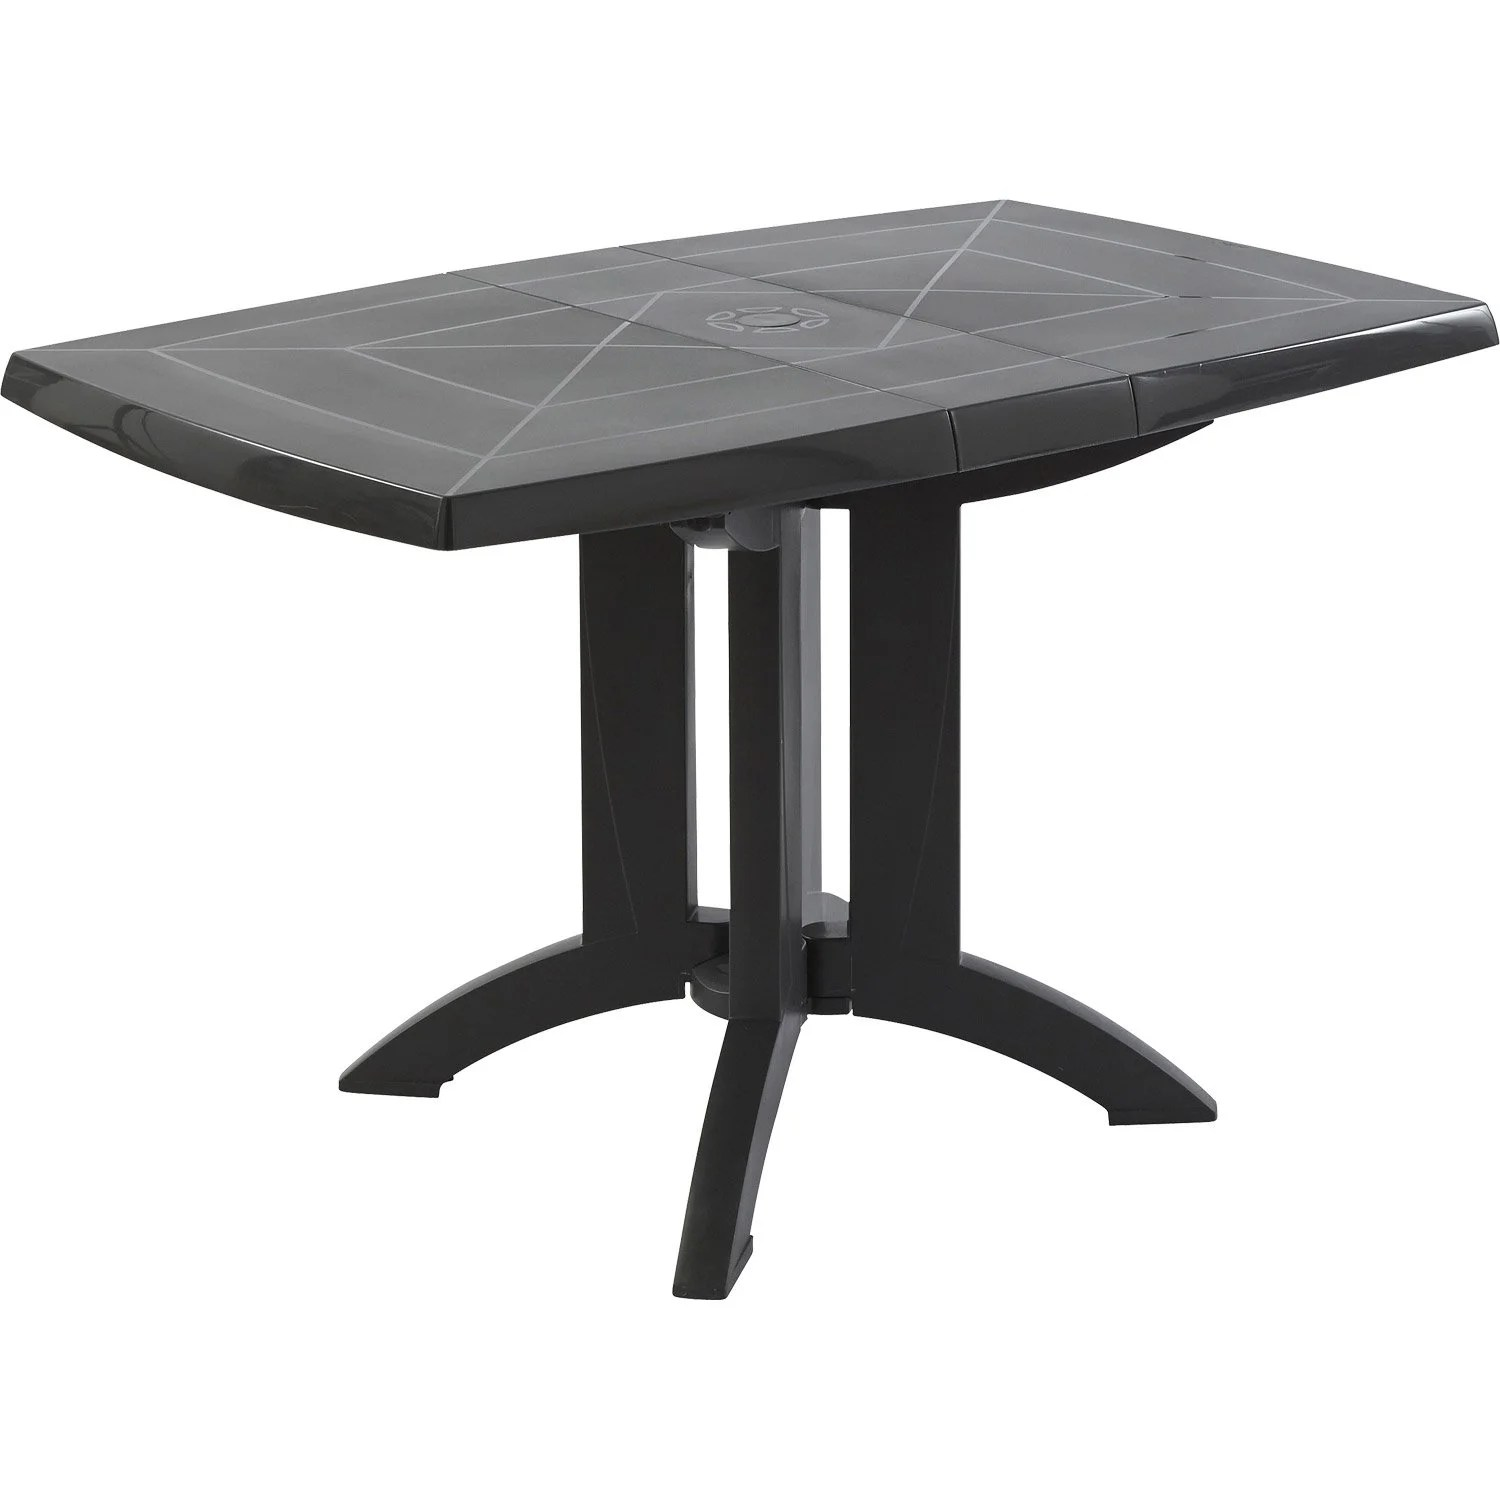 Salon De Jardin Vega Table De Jardin Grosfillex Véga Rectangulaire Anthracite 4